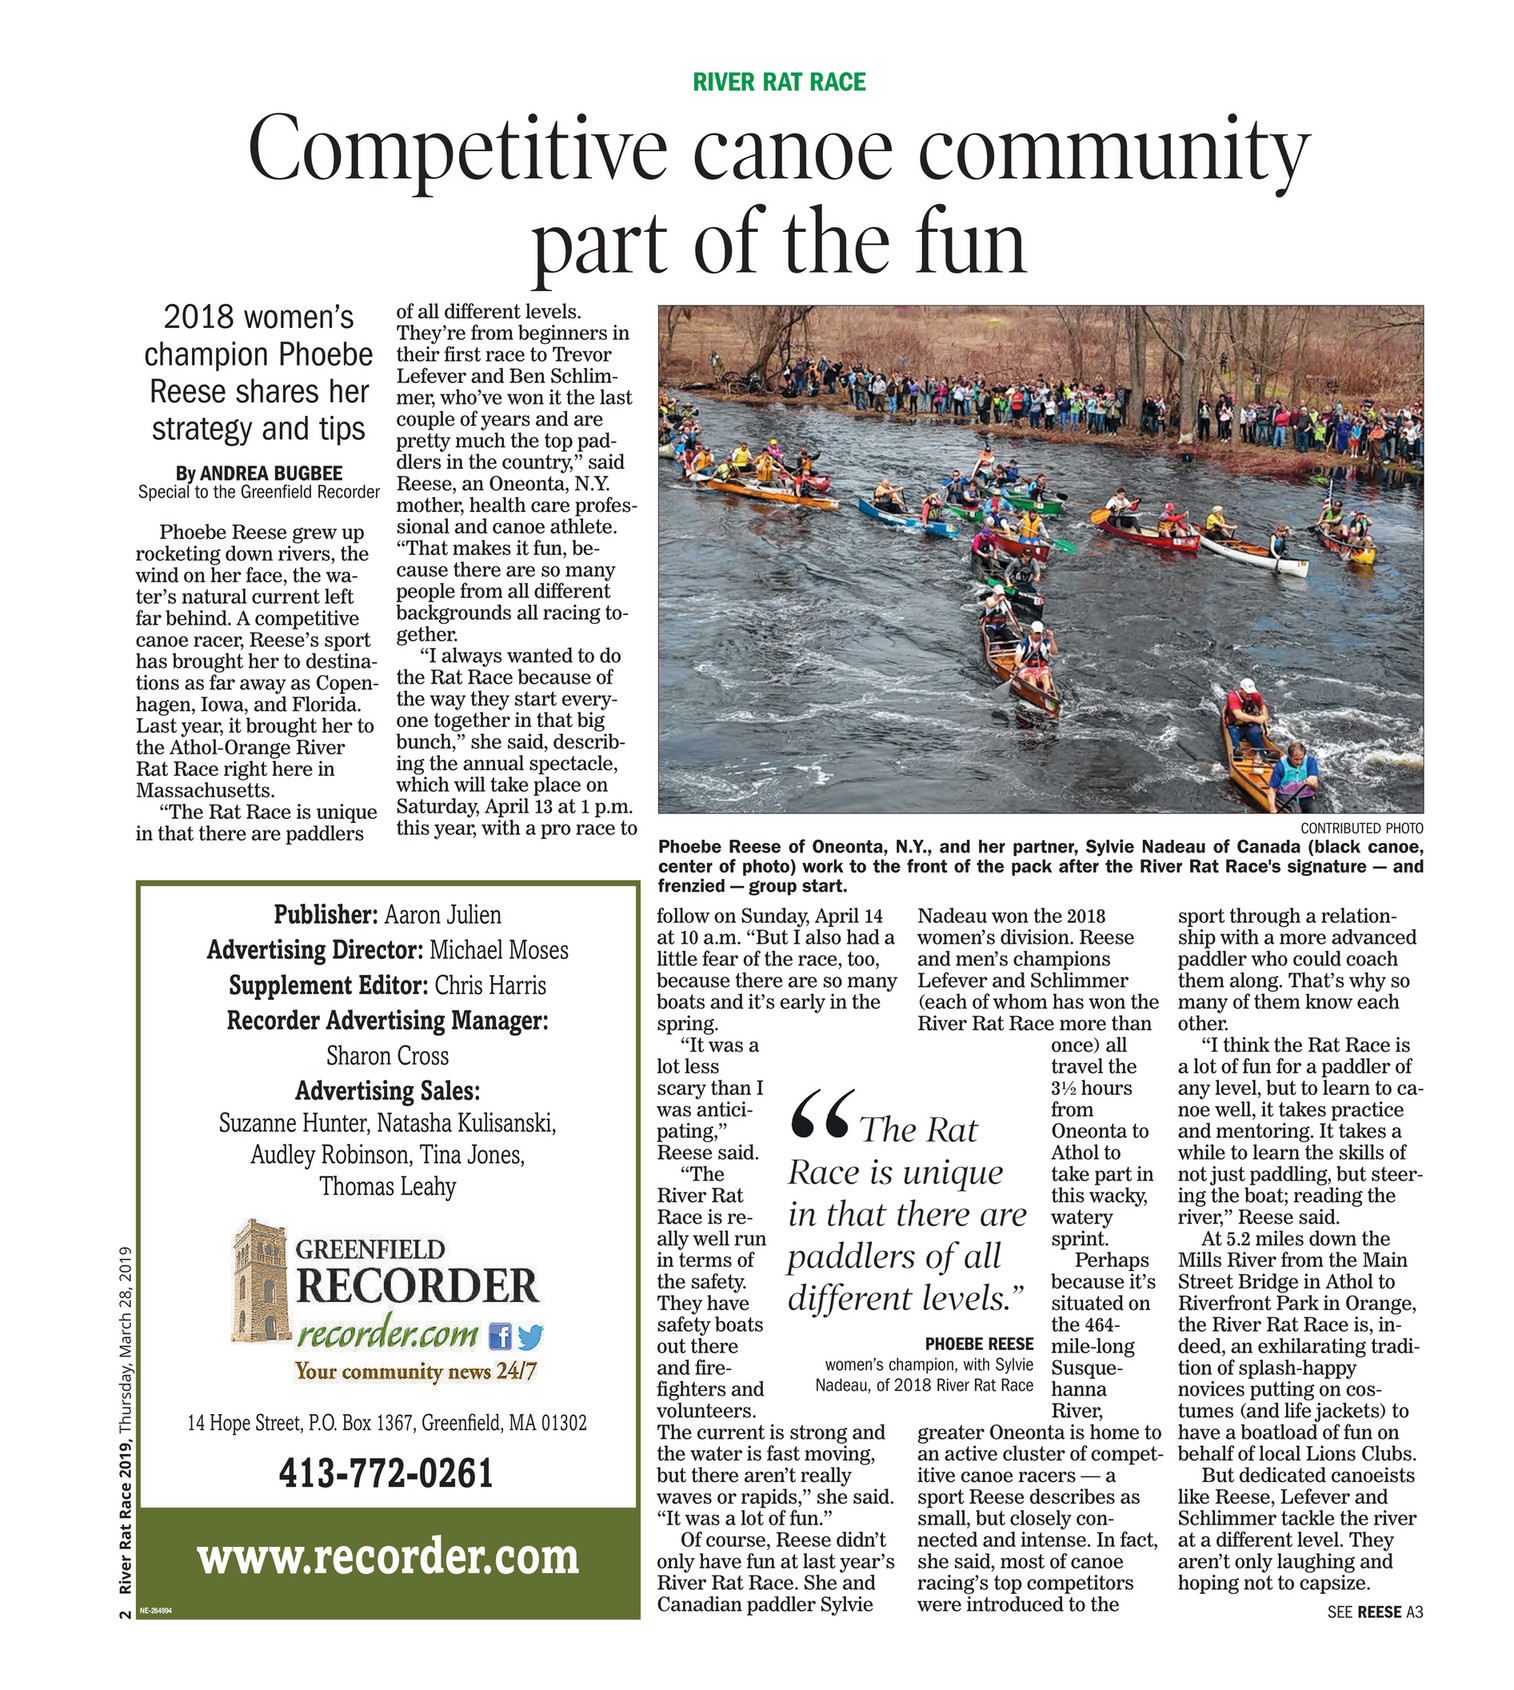 The Recorder - River Rat Race 2019 - Page 1